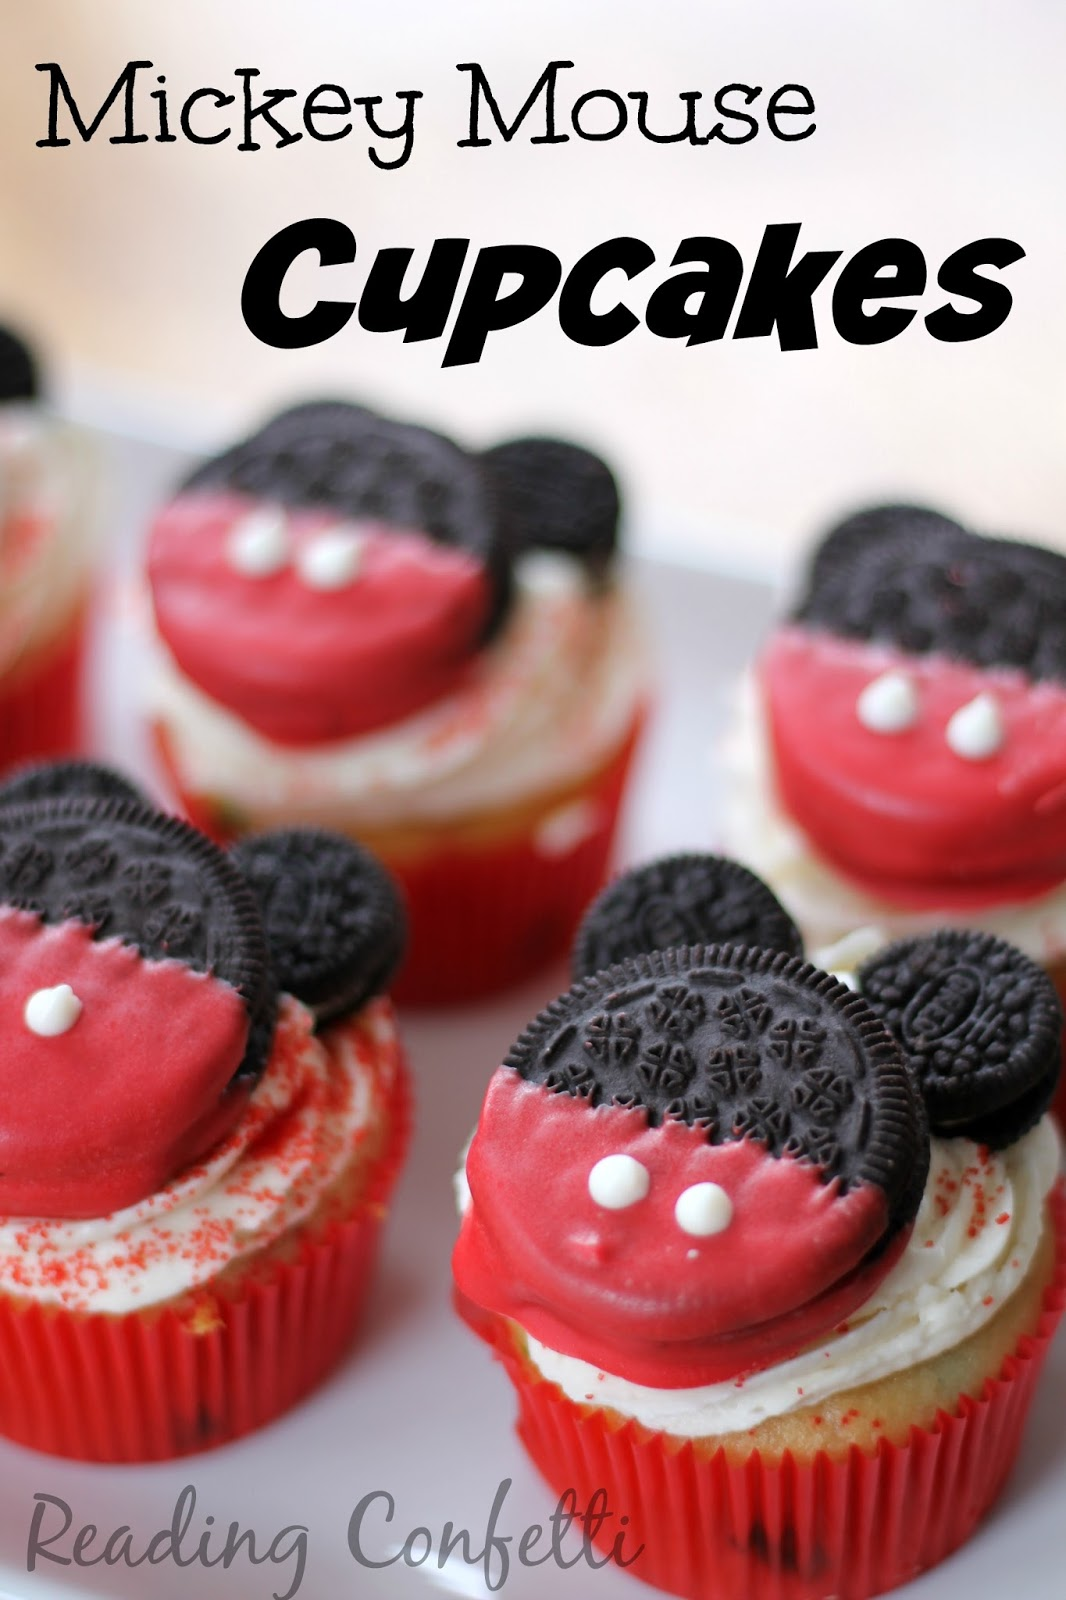 Mickey Mouse Cupcakes: Baking with Kids ~ Reading Confetti